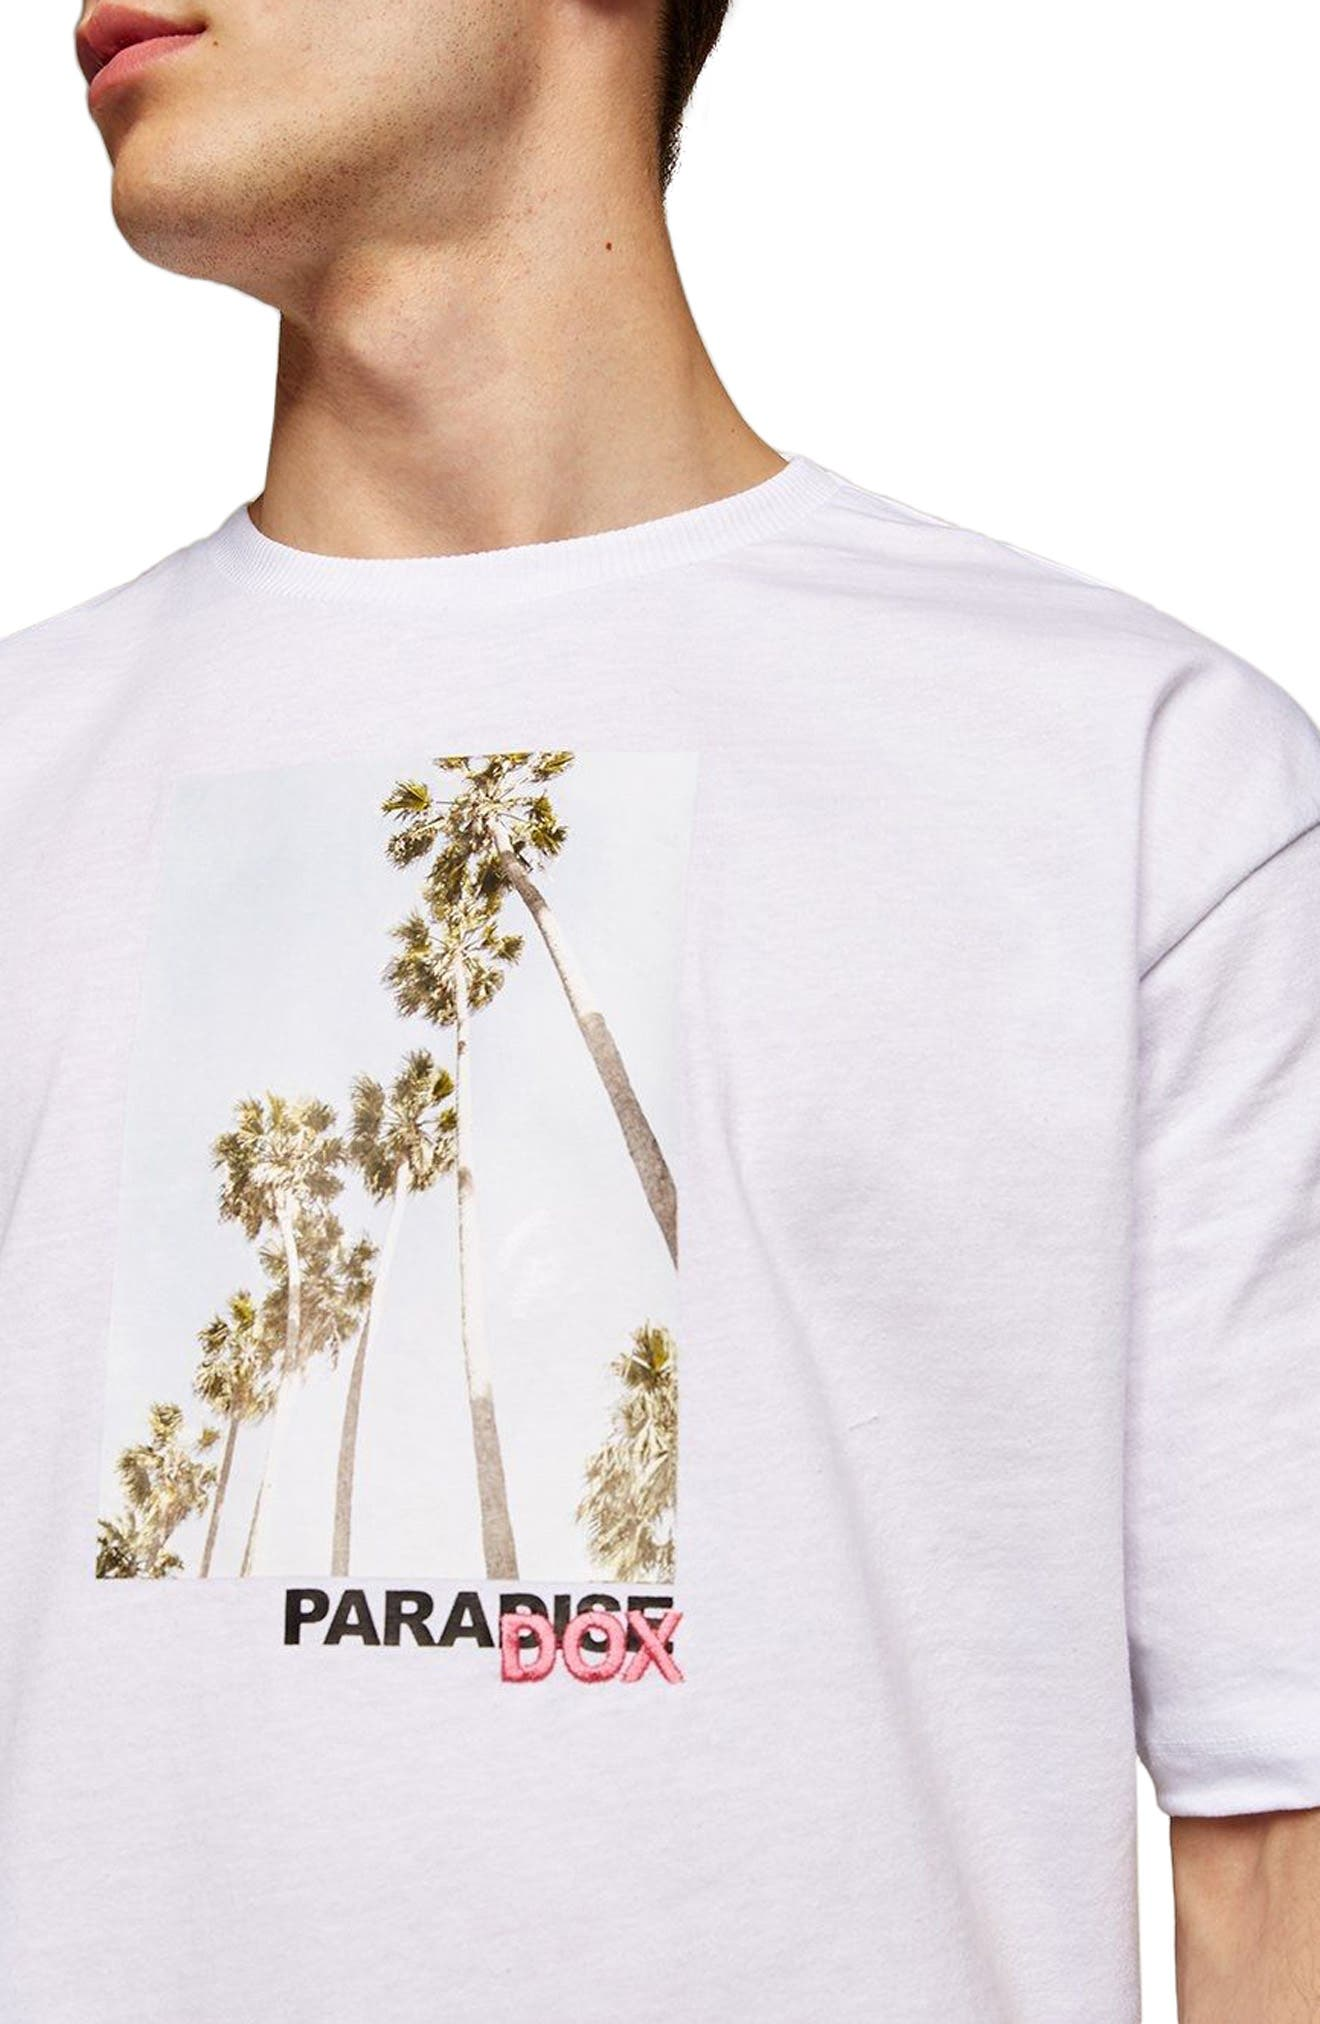 Paradox Graphic T-Shirt,                         Main,                         color, WHITE MULTI